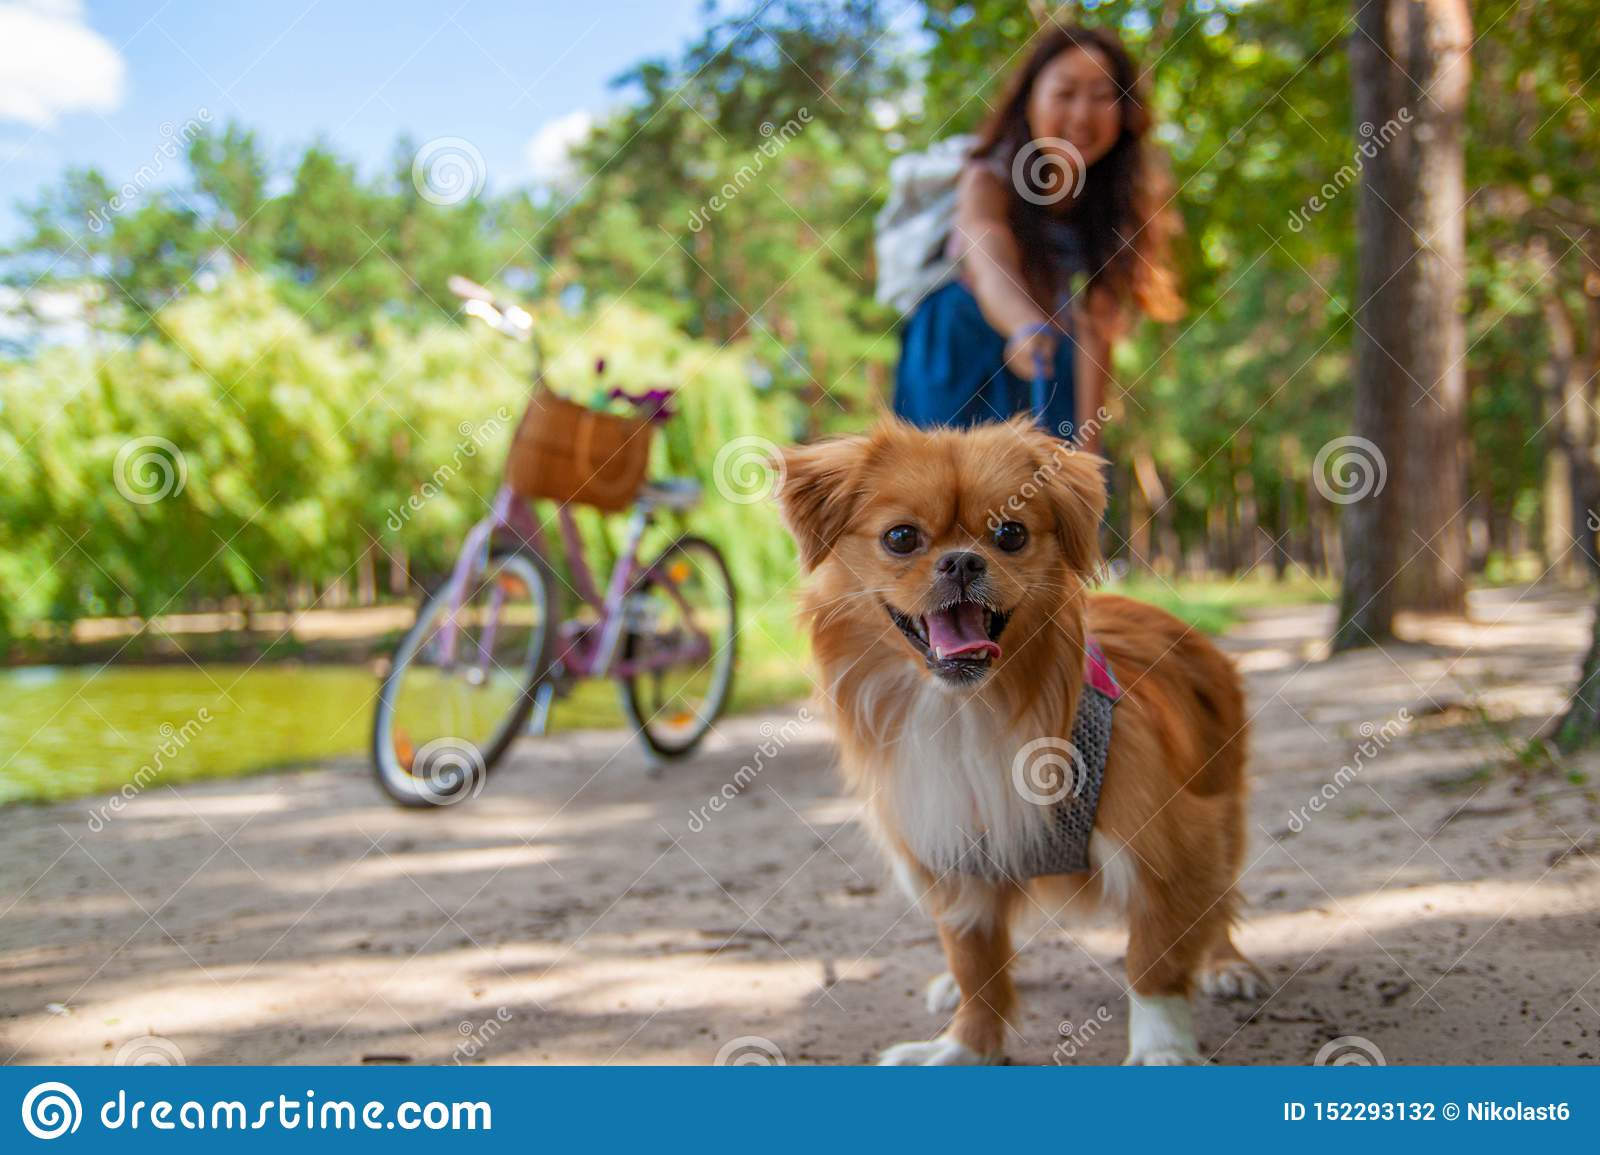 Cute asian girl with little dog walking in park. Woman sitting on green grass with dog - outdoor in nature portrait. Pet, domestic